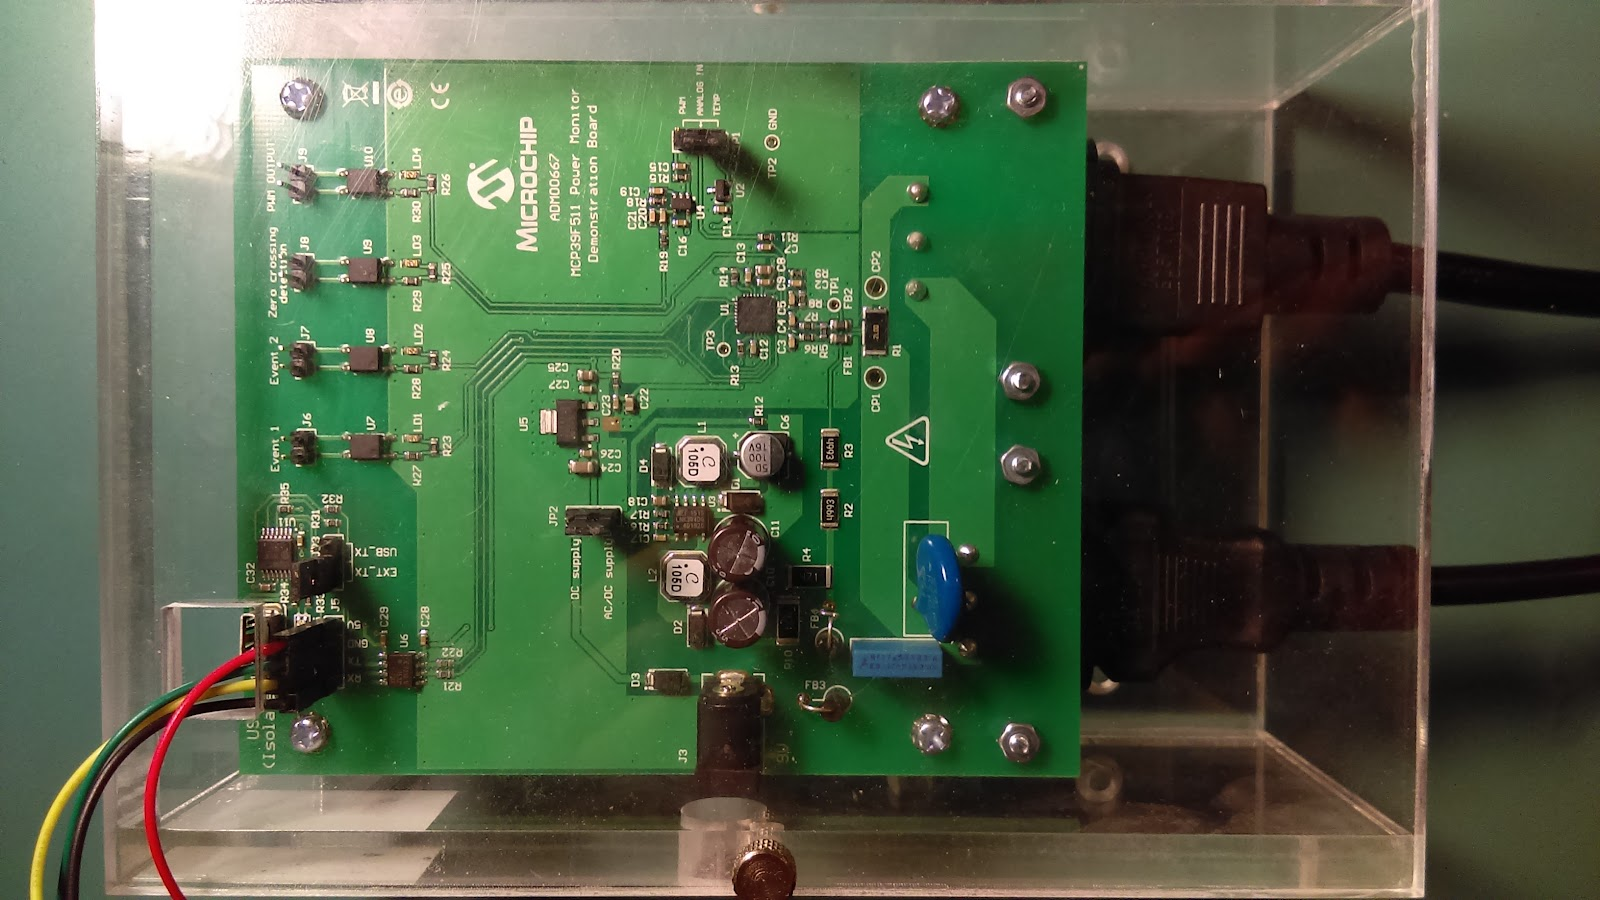 Kas Embedded Projects And Review Figure 3 I Add Buzzer Sound Circuit For Alarm When Detect Acvolts These Values Include Line Voltage Current Power Factor Energy Counters Among Others This Project The Calibration Tuning Variables Were Left